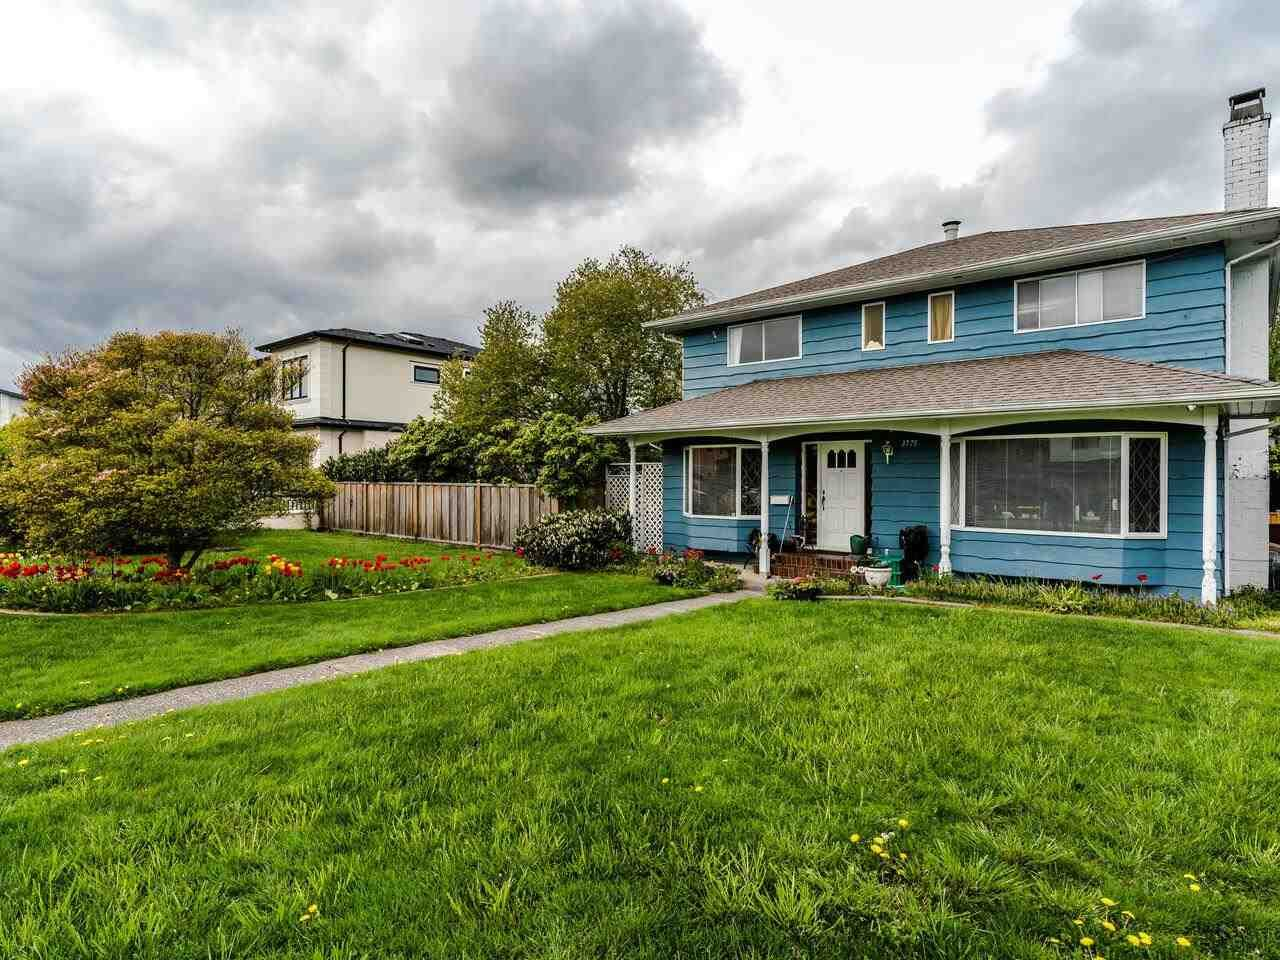 Main Photo: 3775 ELMWOOD Street in Burnaby: Burnaby Hospital House for sale (Burnaby South)  : MLS®# R2574049